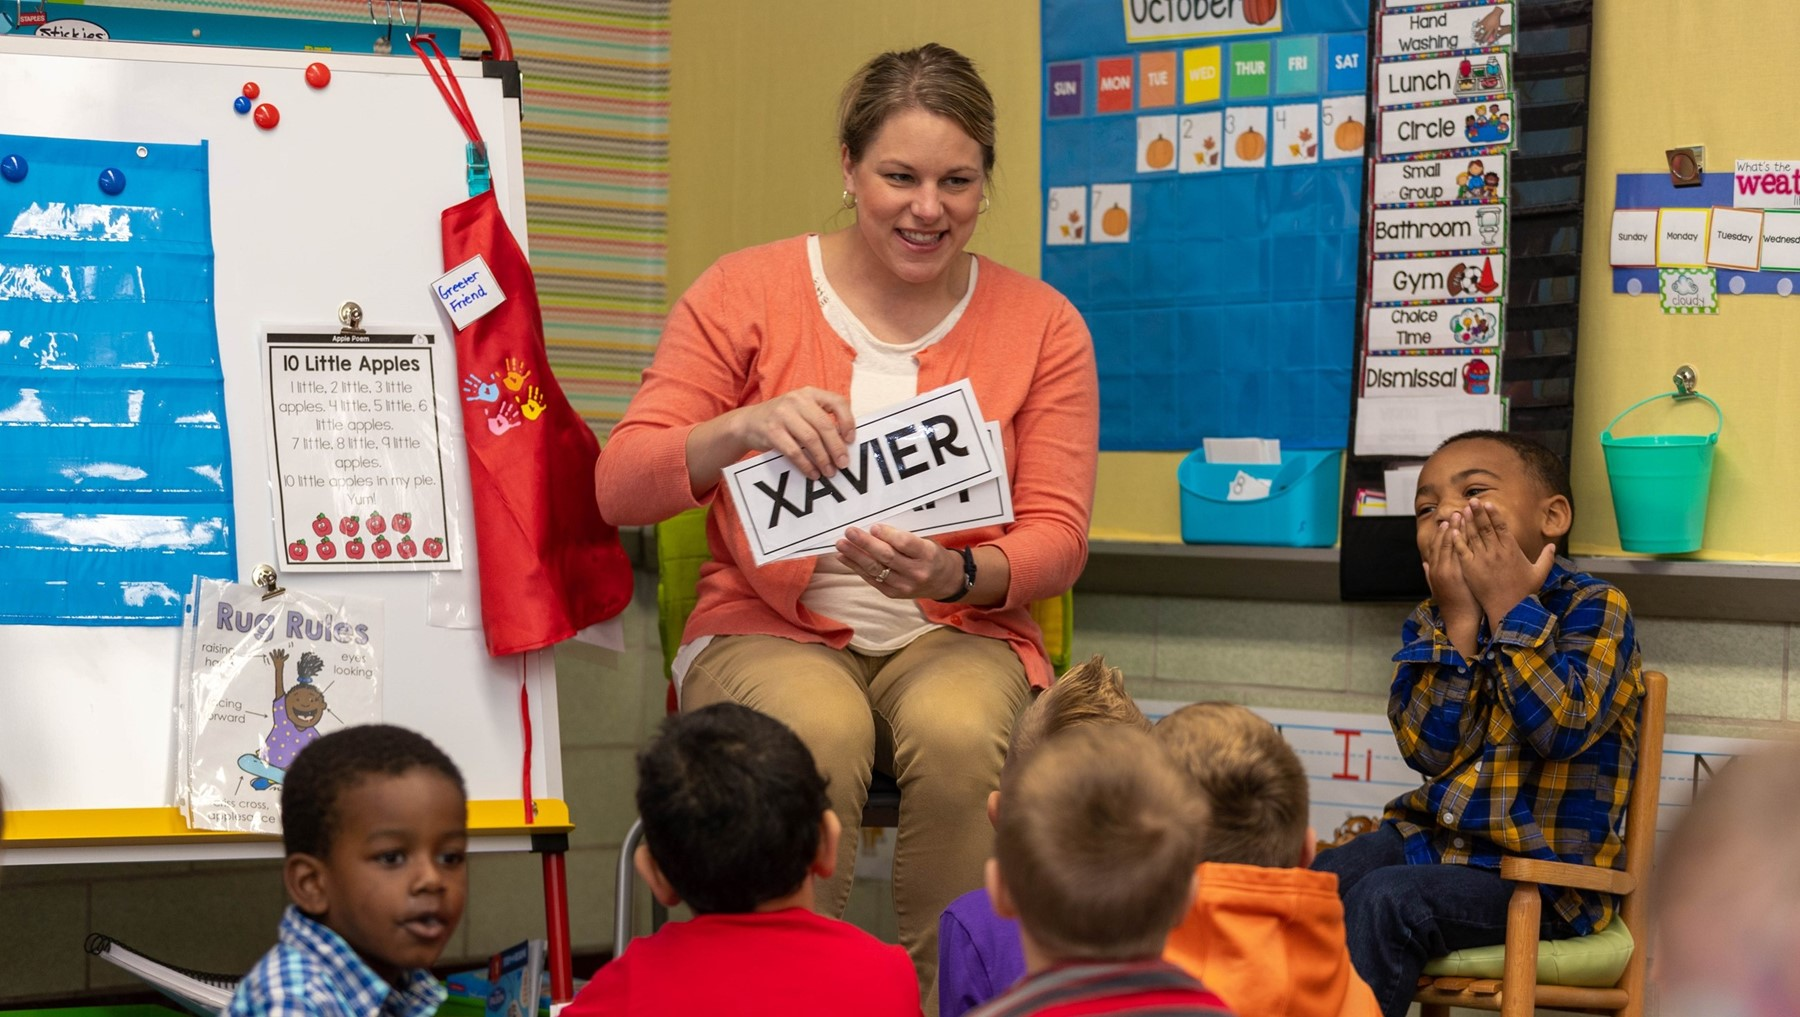 Our preschool program is making a big difference in Kindergarten readiness for students!